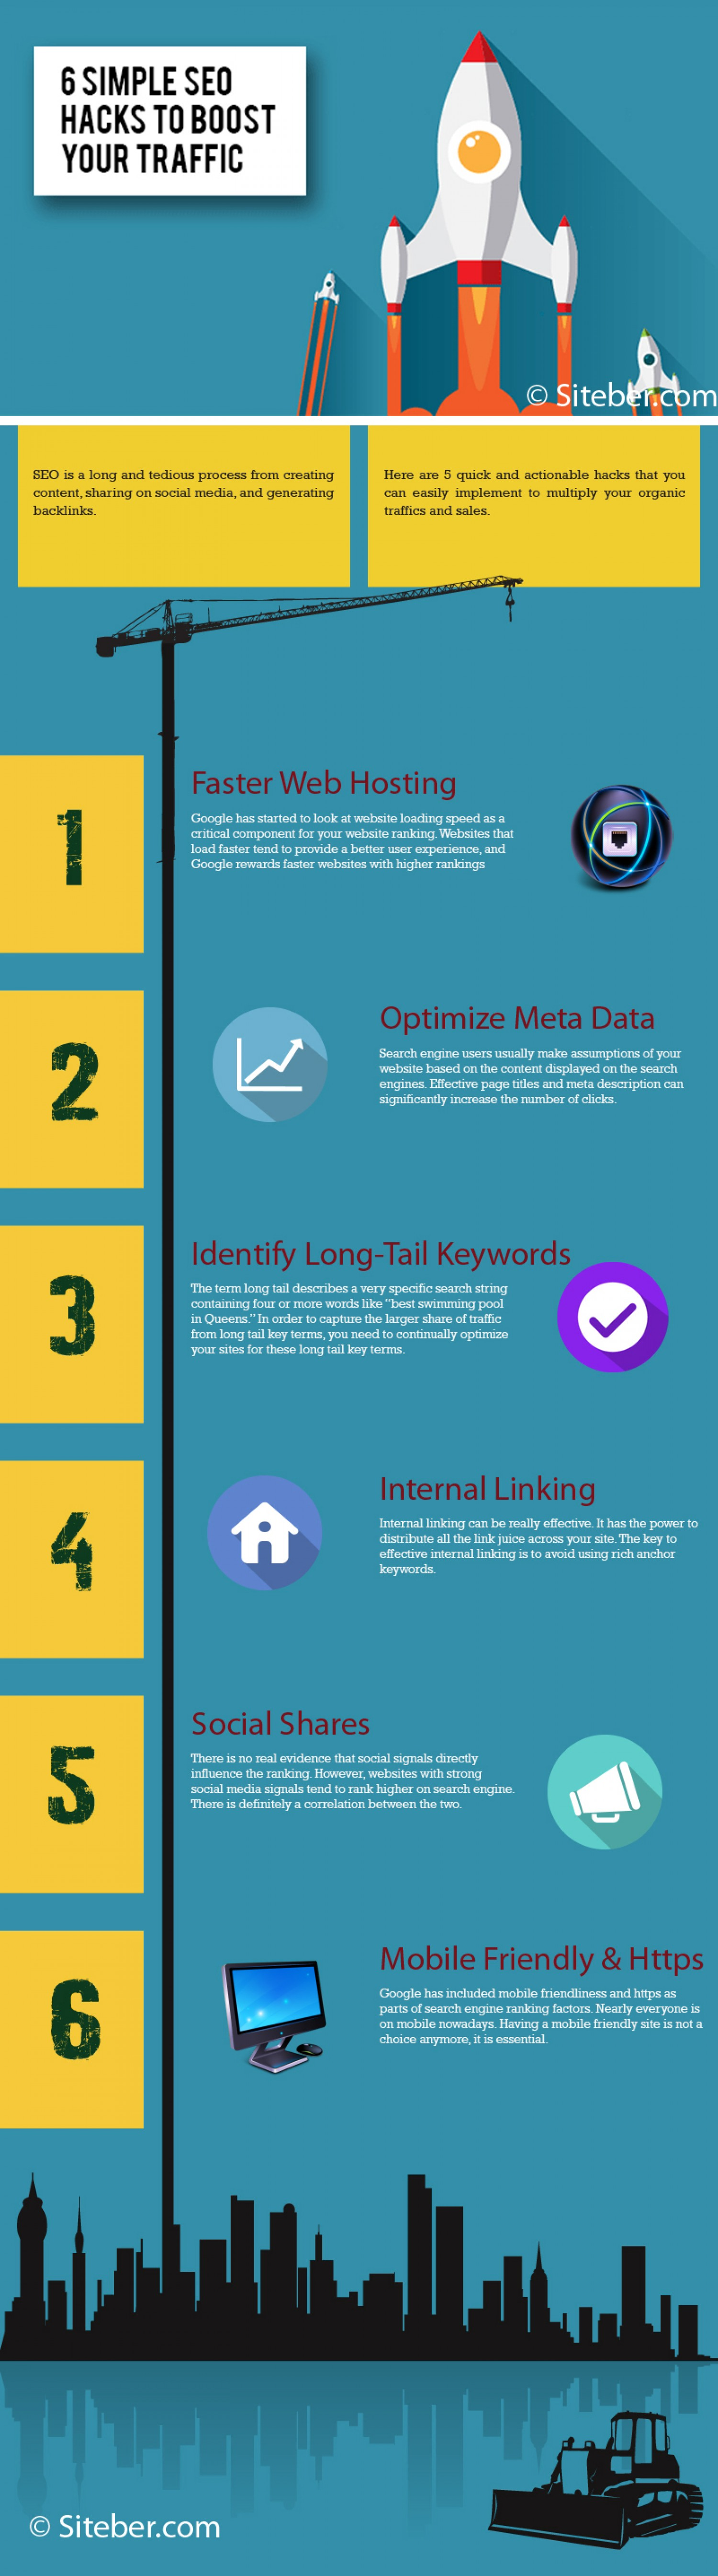 Top 6 Seo Hacks To Boost Your Traffic Infographic Traffic Seo